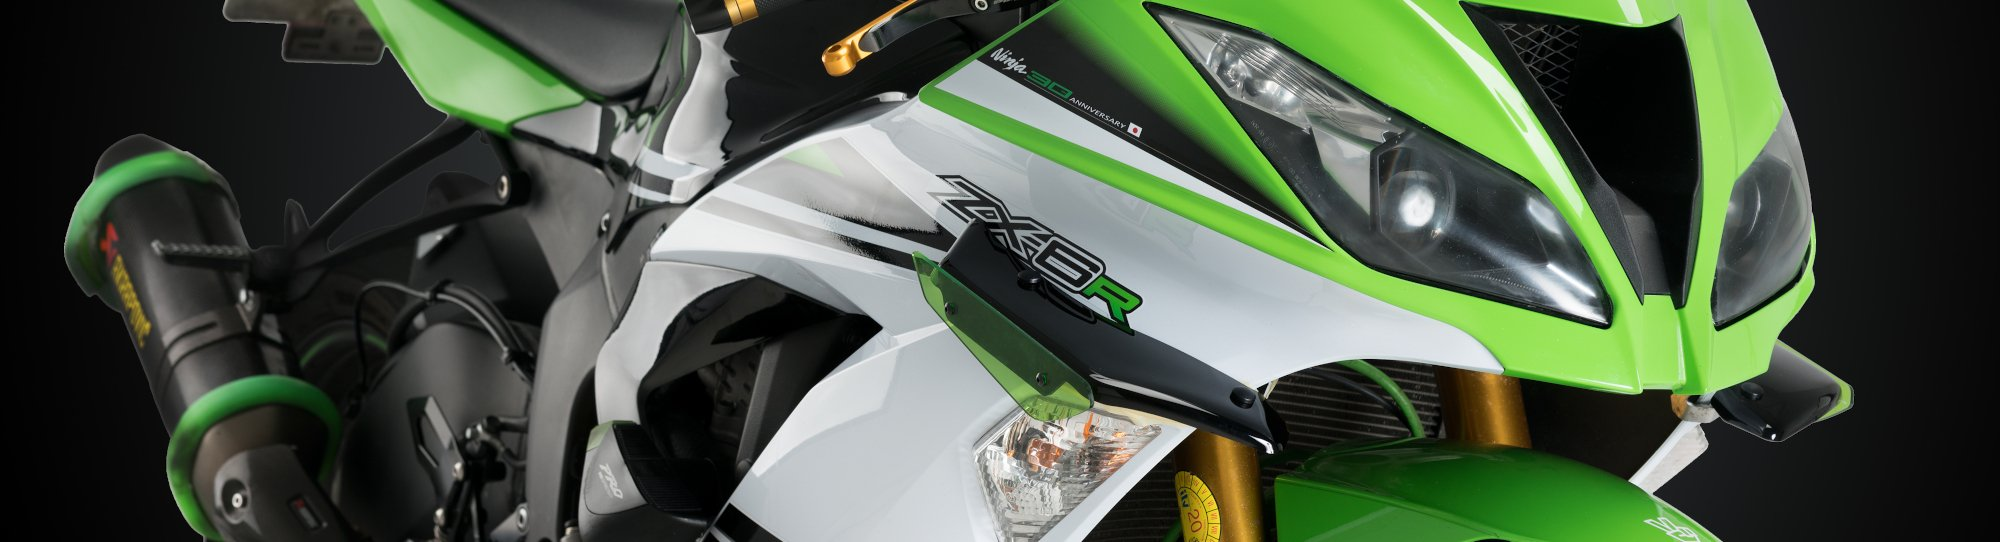 ZX-6R_Downforce_Spoiler